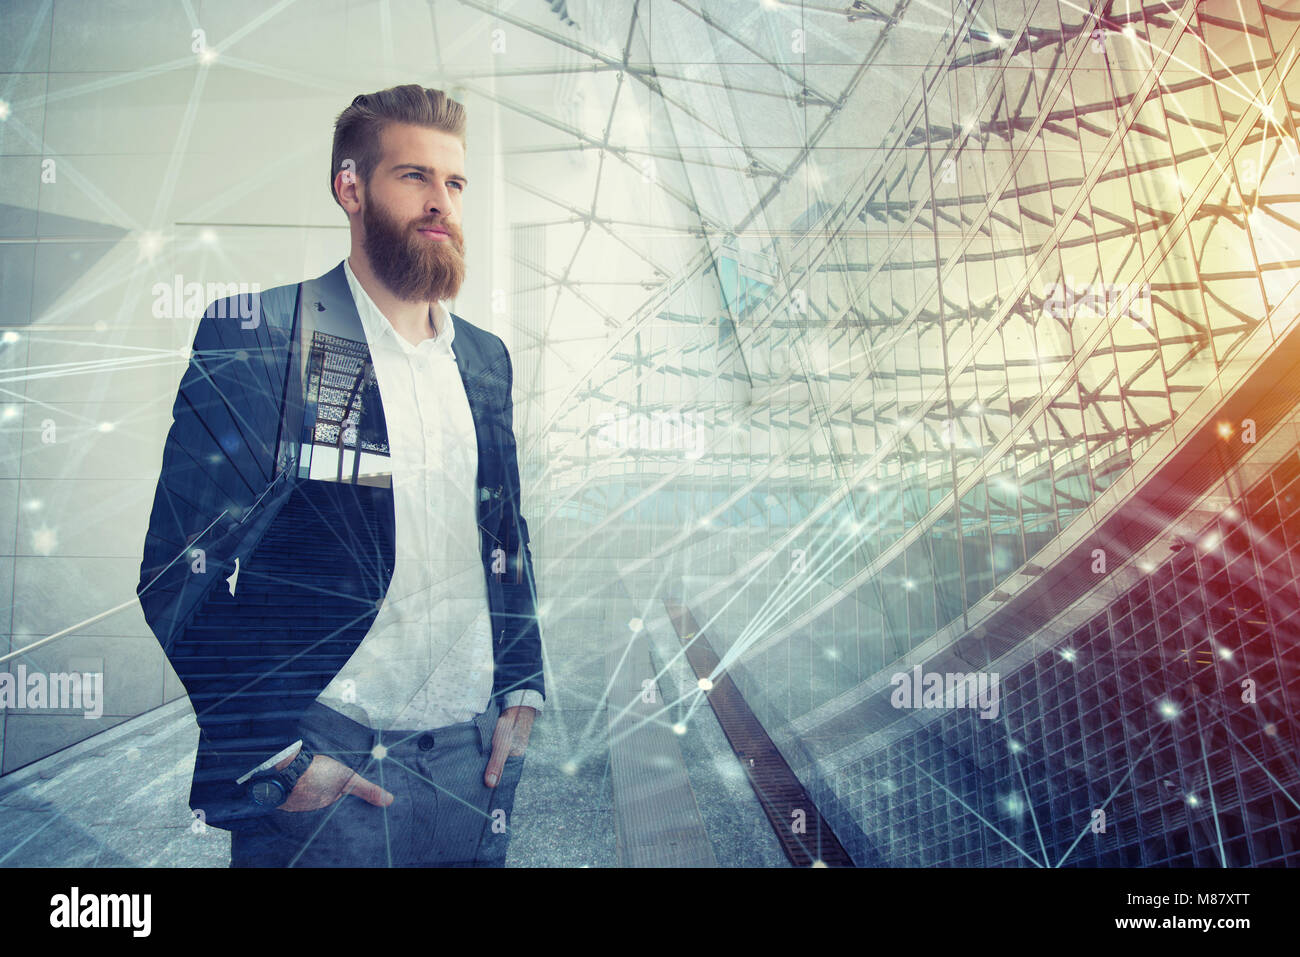 Businessman looks far for the future. Concept of innovation and startup - Stock Image